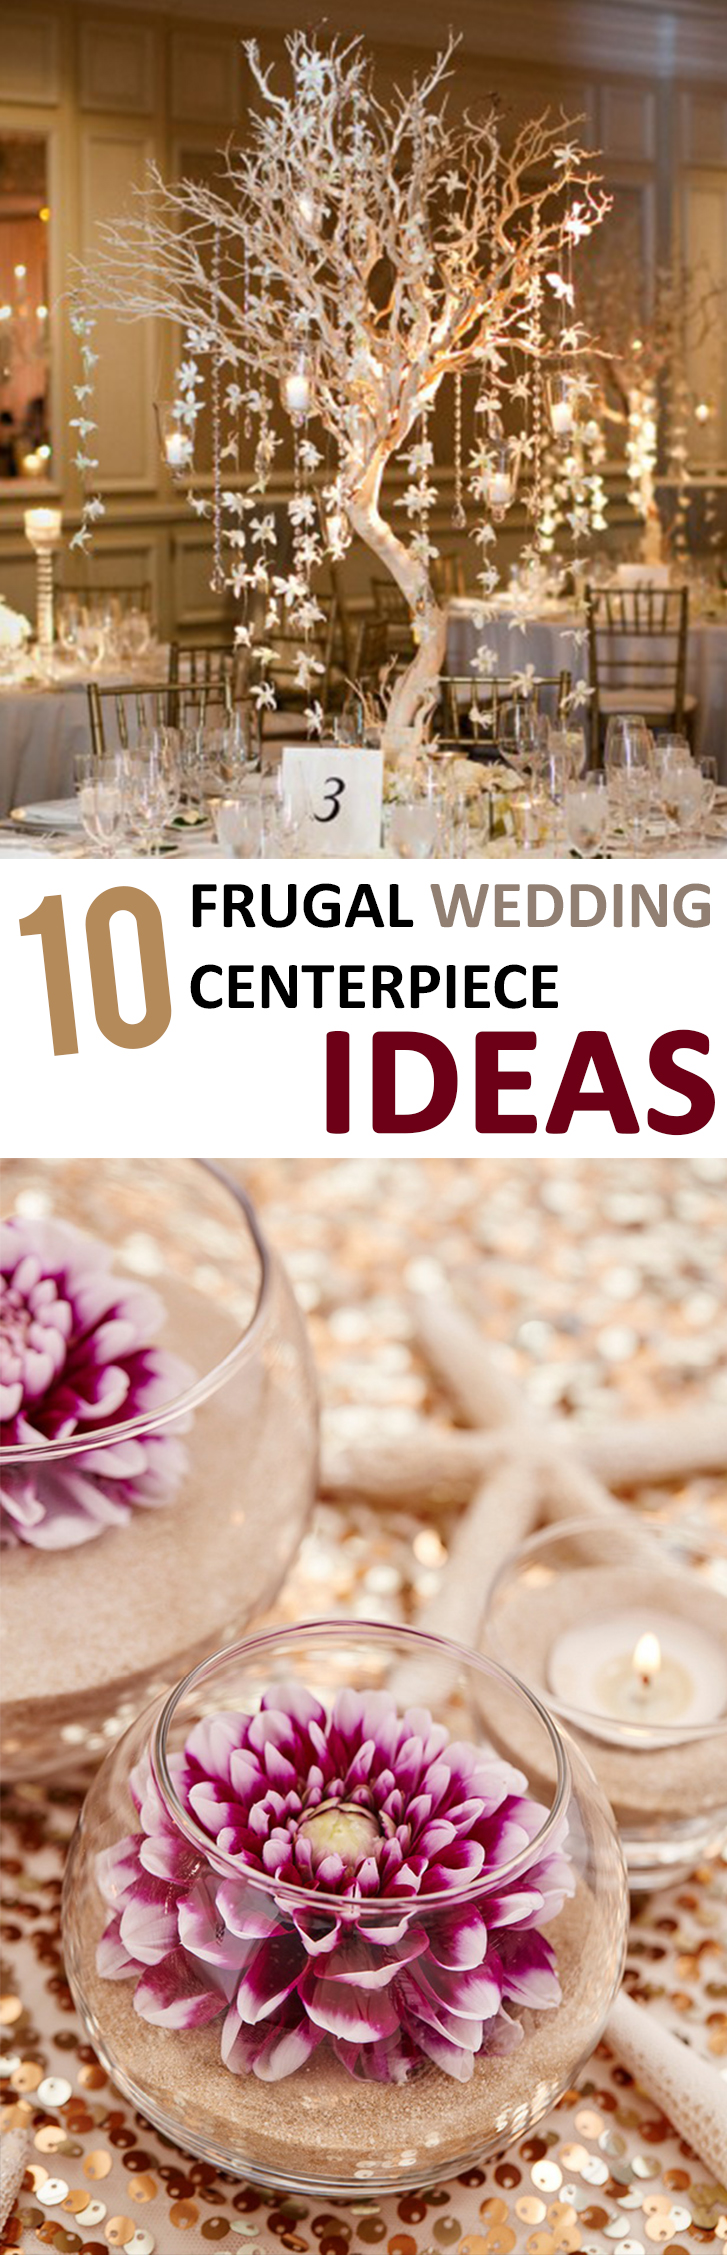 Wedding Reception Decorations Ideas Diy : ... wedding, DIY wedding decor, popular pin, wedding centerpiece ideas